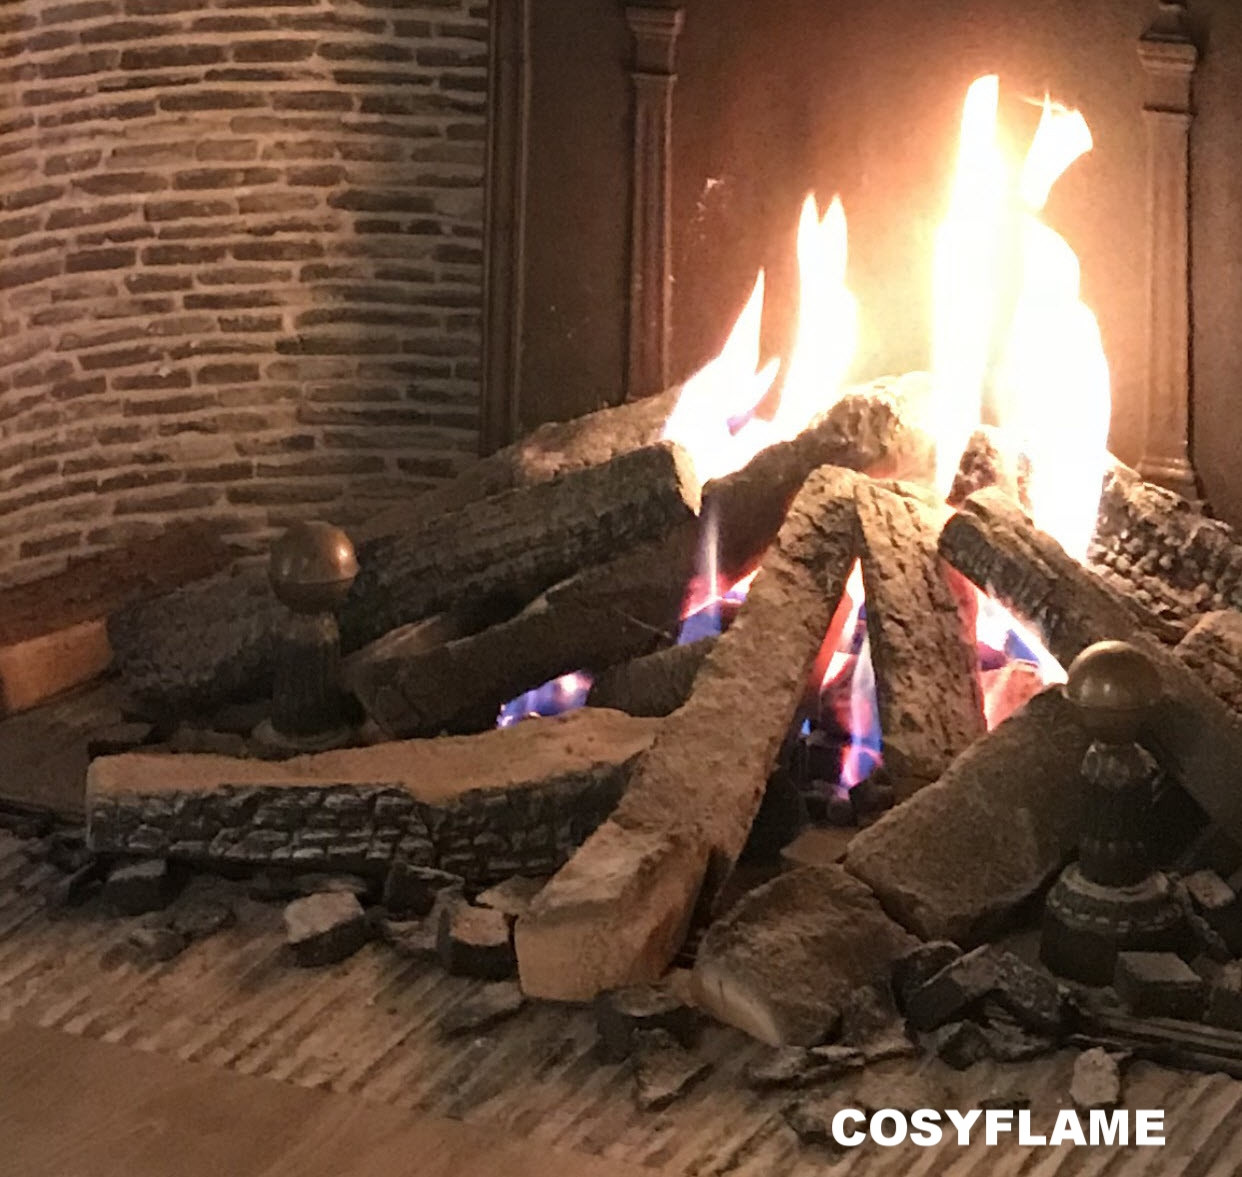 Cosyflame-3Dset